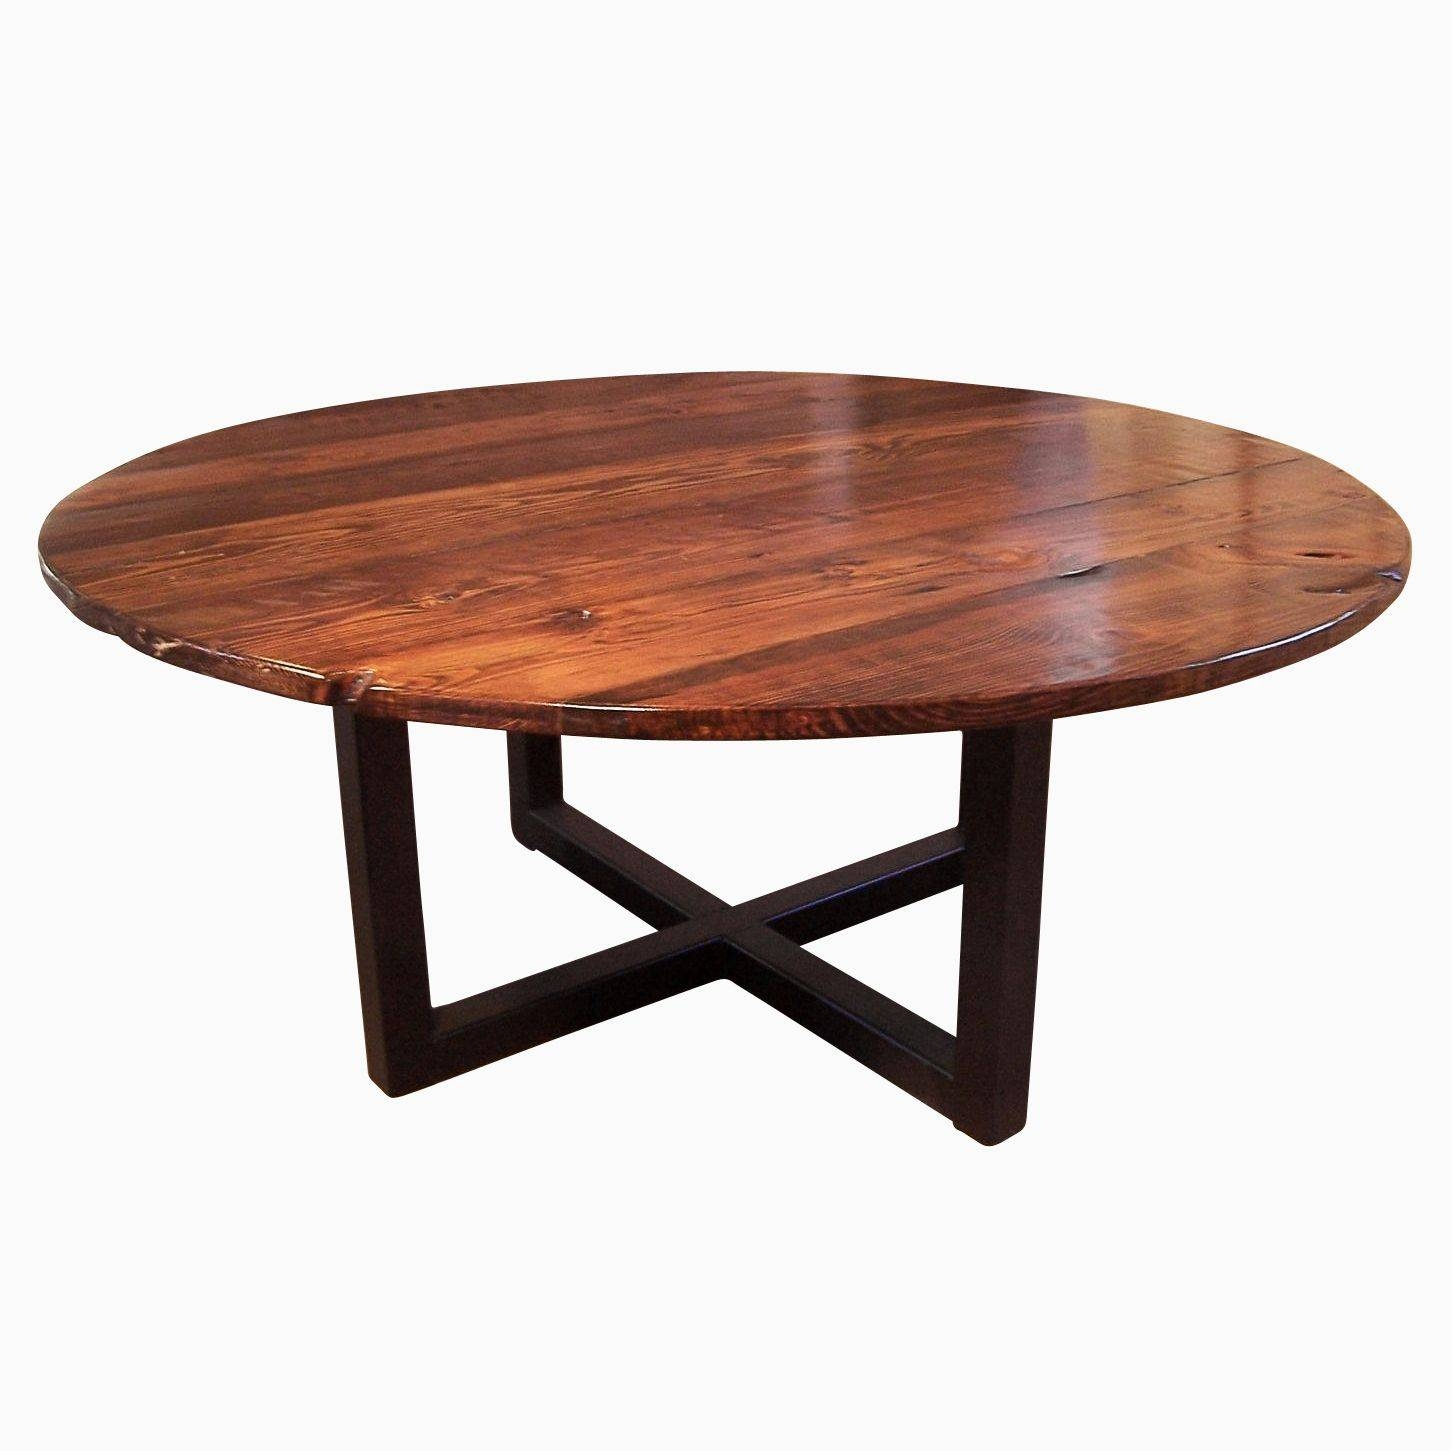 Industrial Coffee Tables | Custommade inside Industrial Round Coffee Tables (Image 9 of 15)